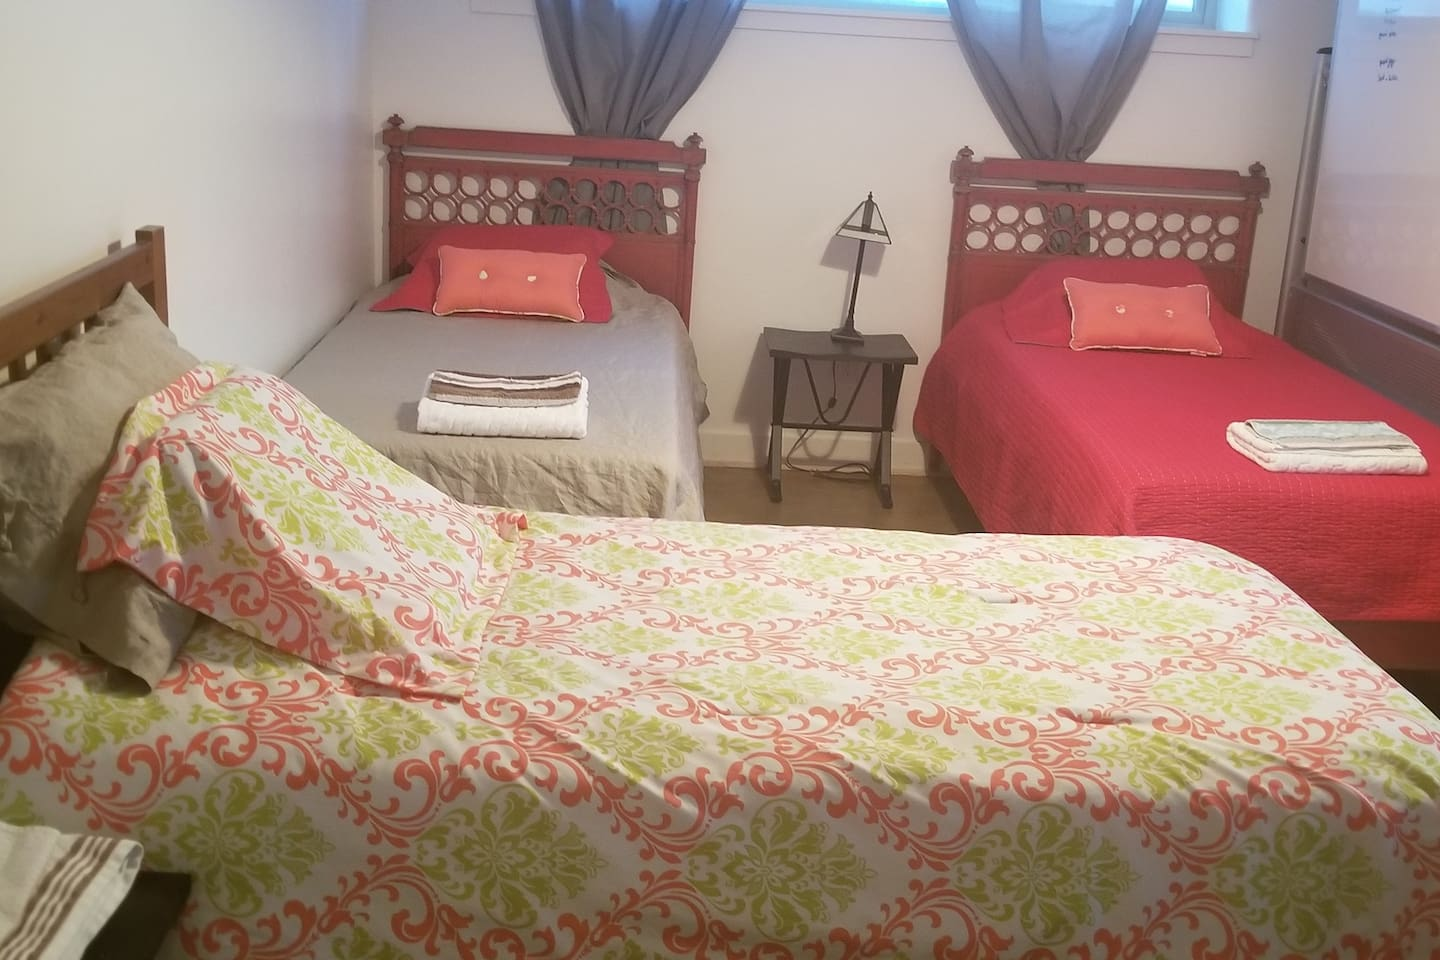 This since the 24th at 7am mst this is available, this could be a share bedroom-share bath for $50/night for 1 person in a single bed or a private bedroom for 2 friends or one individual $155 for 2 of one. I reserve the right to remove unused beds